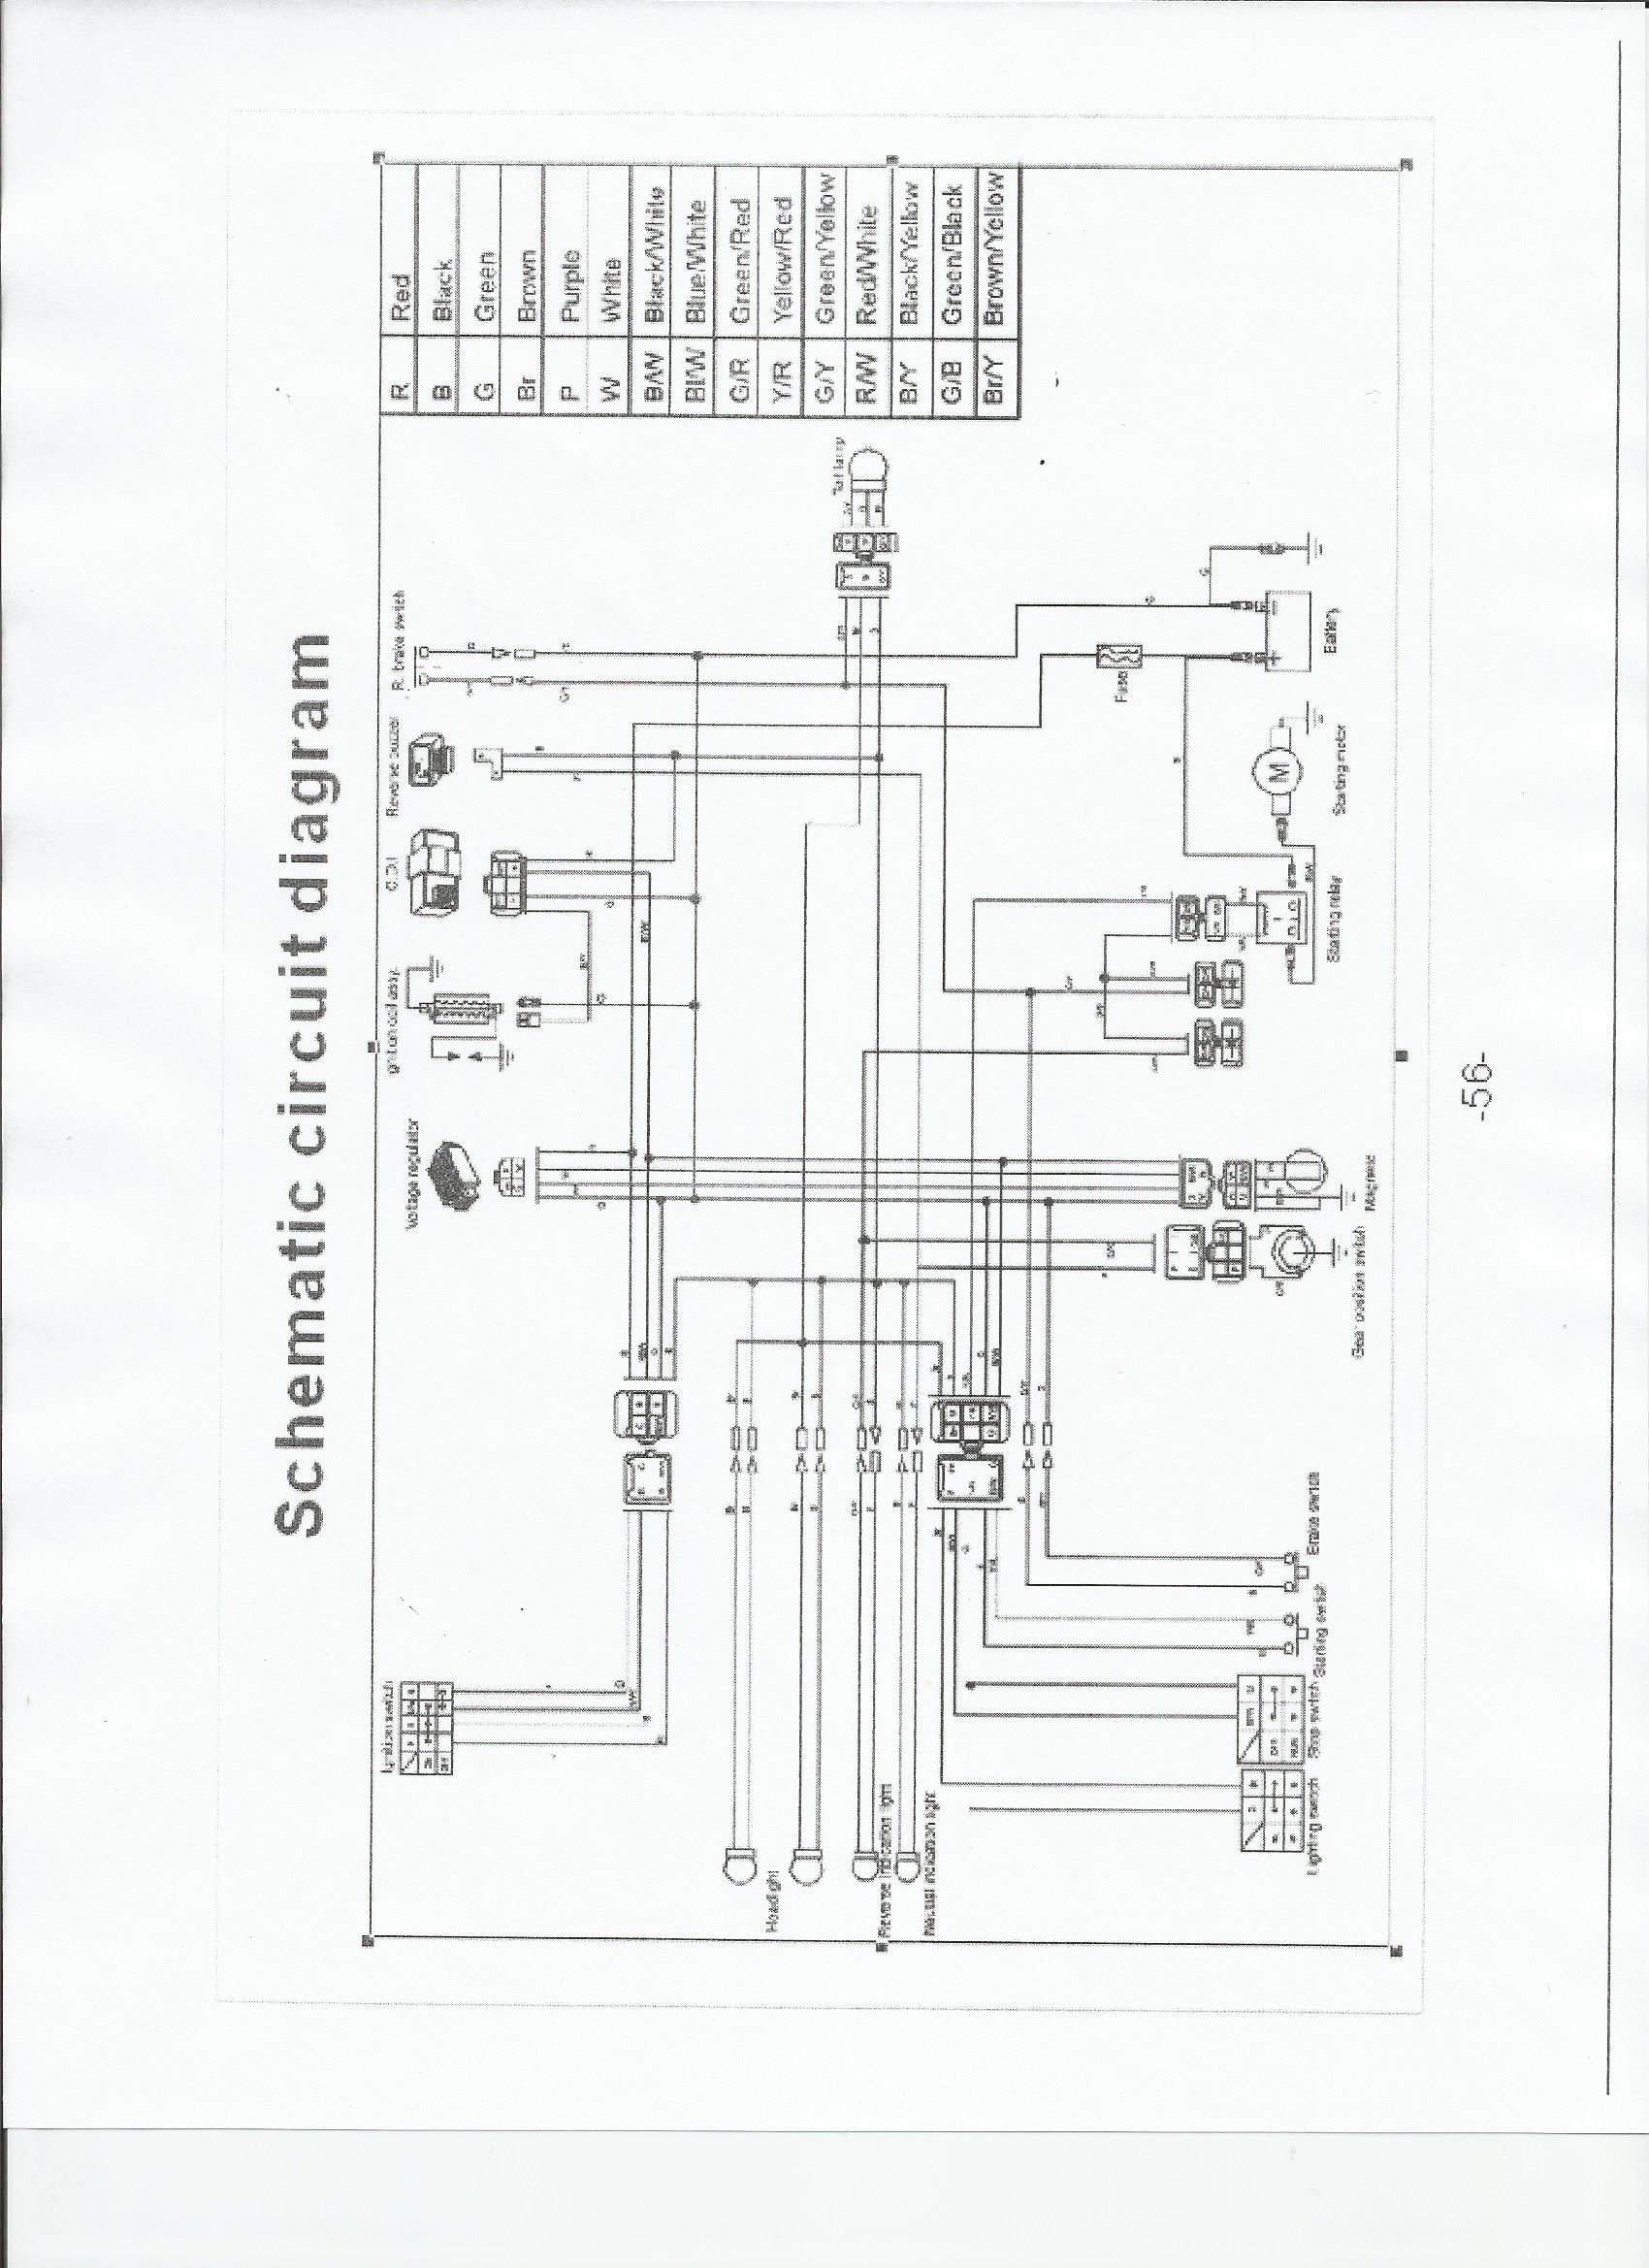 tao tao wiring schematic taotao mini and youth atv wiring schematic familygokarts support chinese 125 atv wiring diagram at soozxer.org